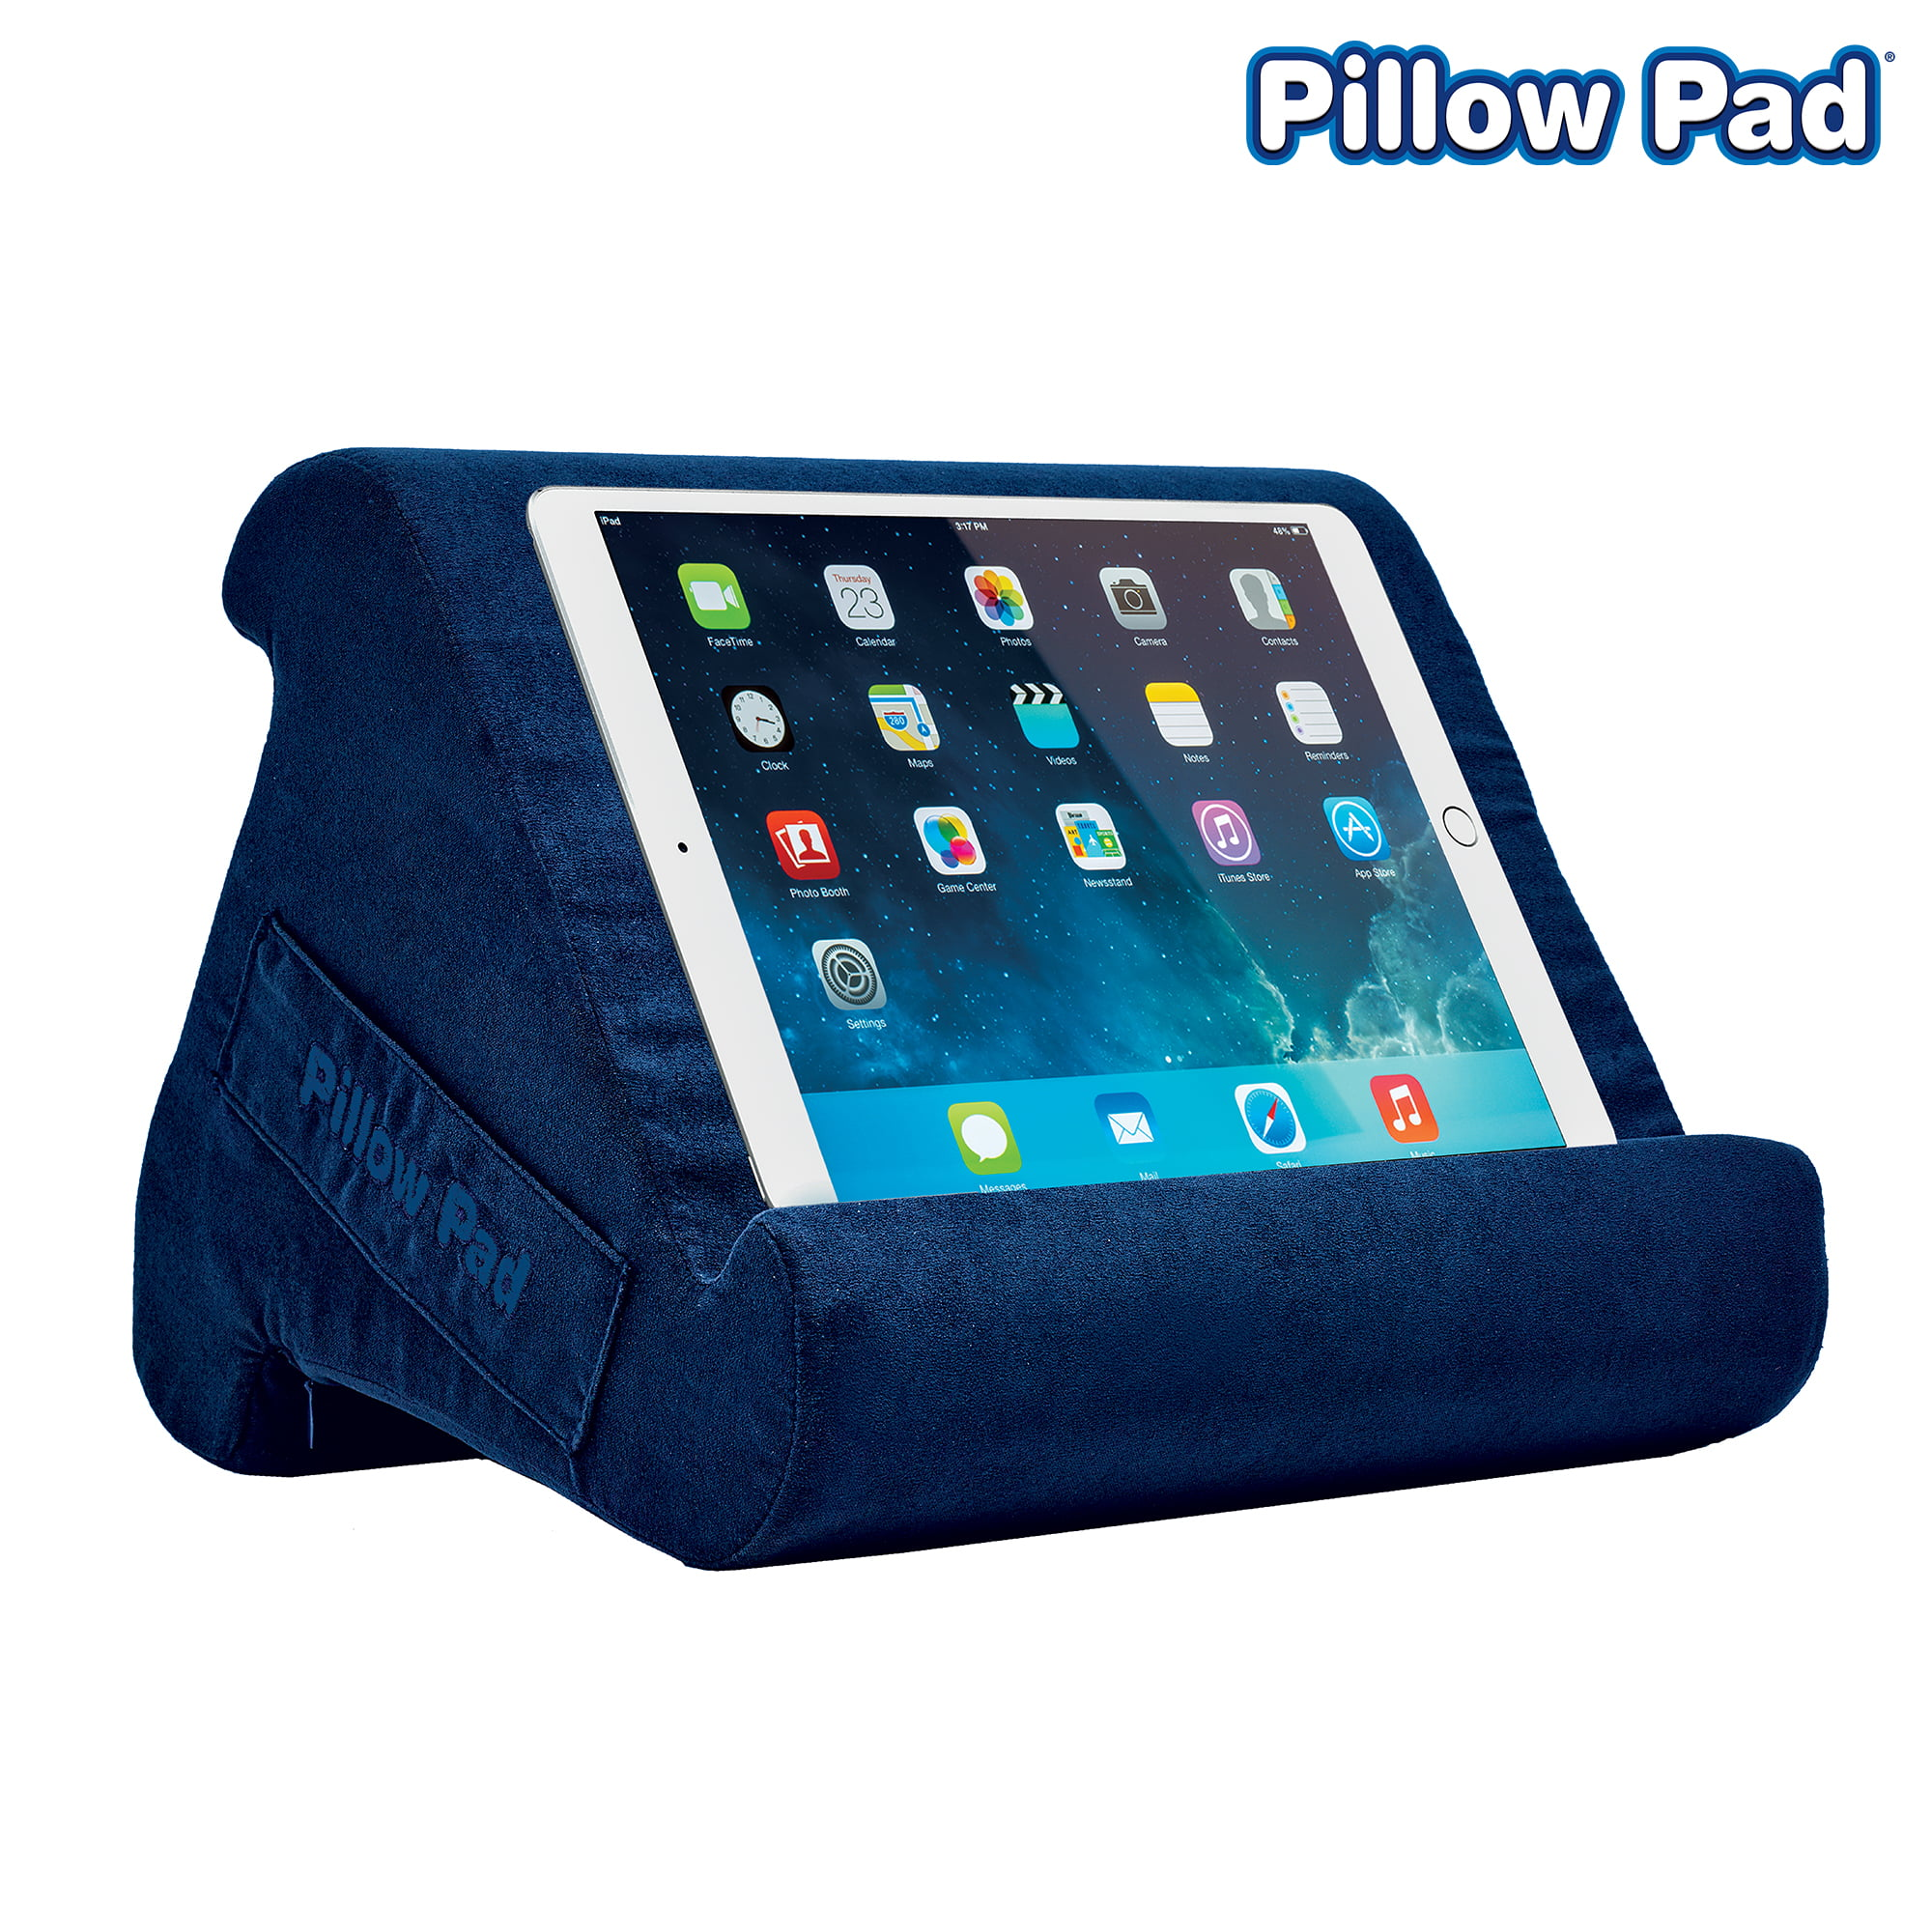 Pillow Pad Multi Angle Cushioned Tablet And Ipad Stand Burgundy